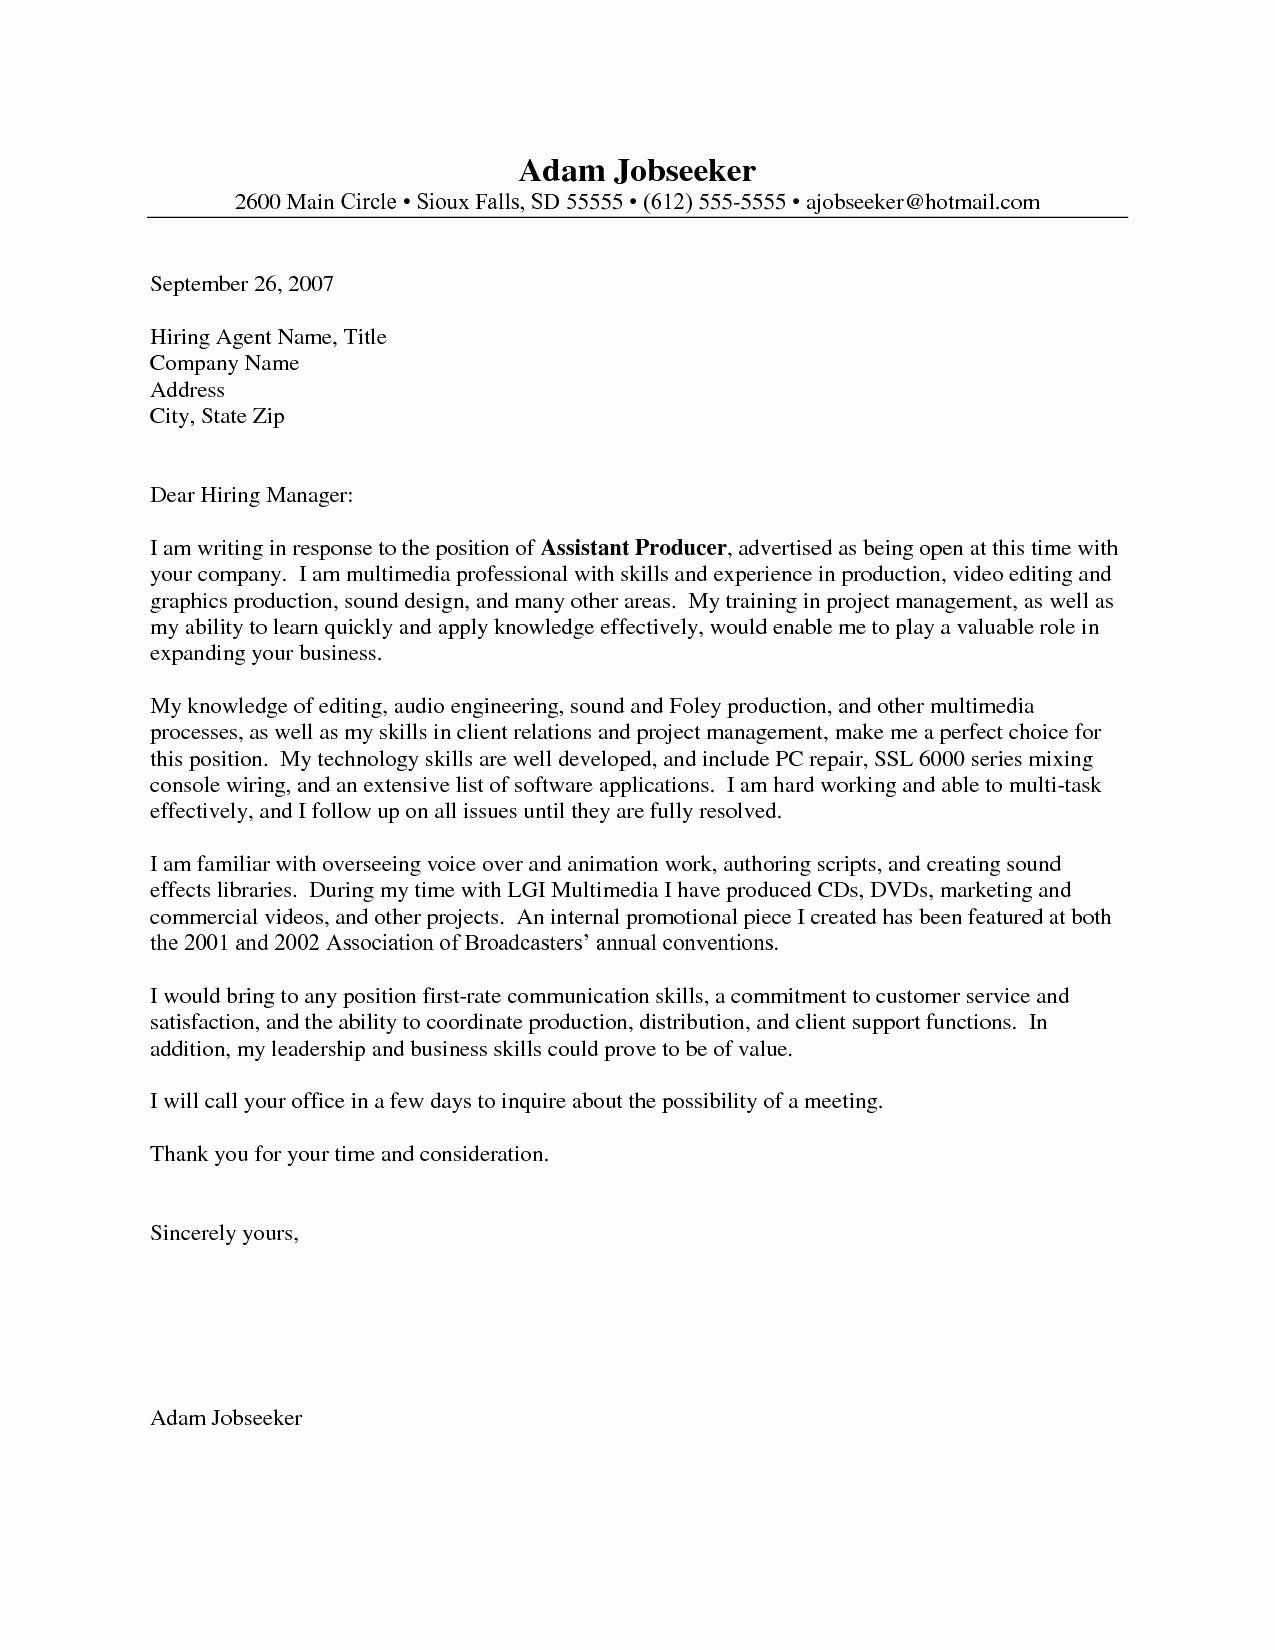 Cover Letter Or Resume First Beautiful Resume Cover Letters Entry